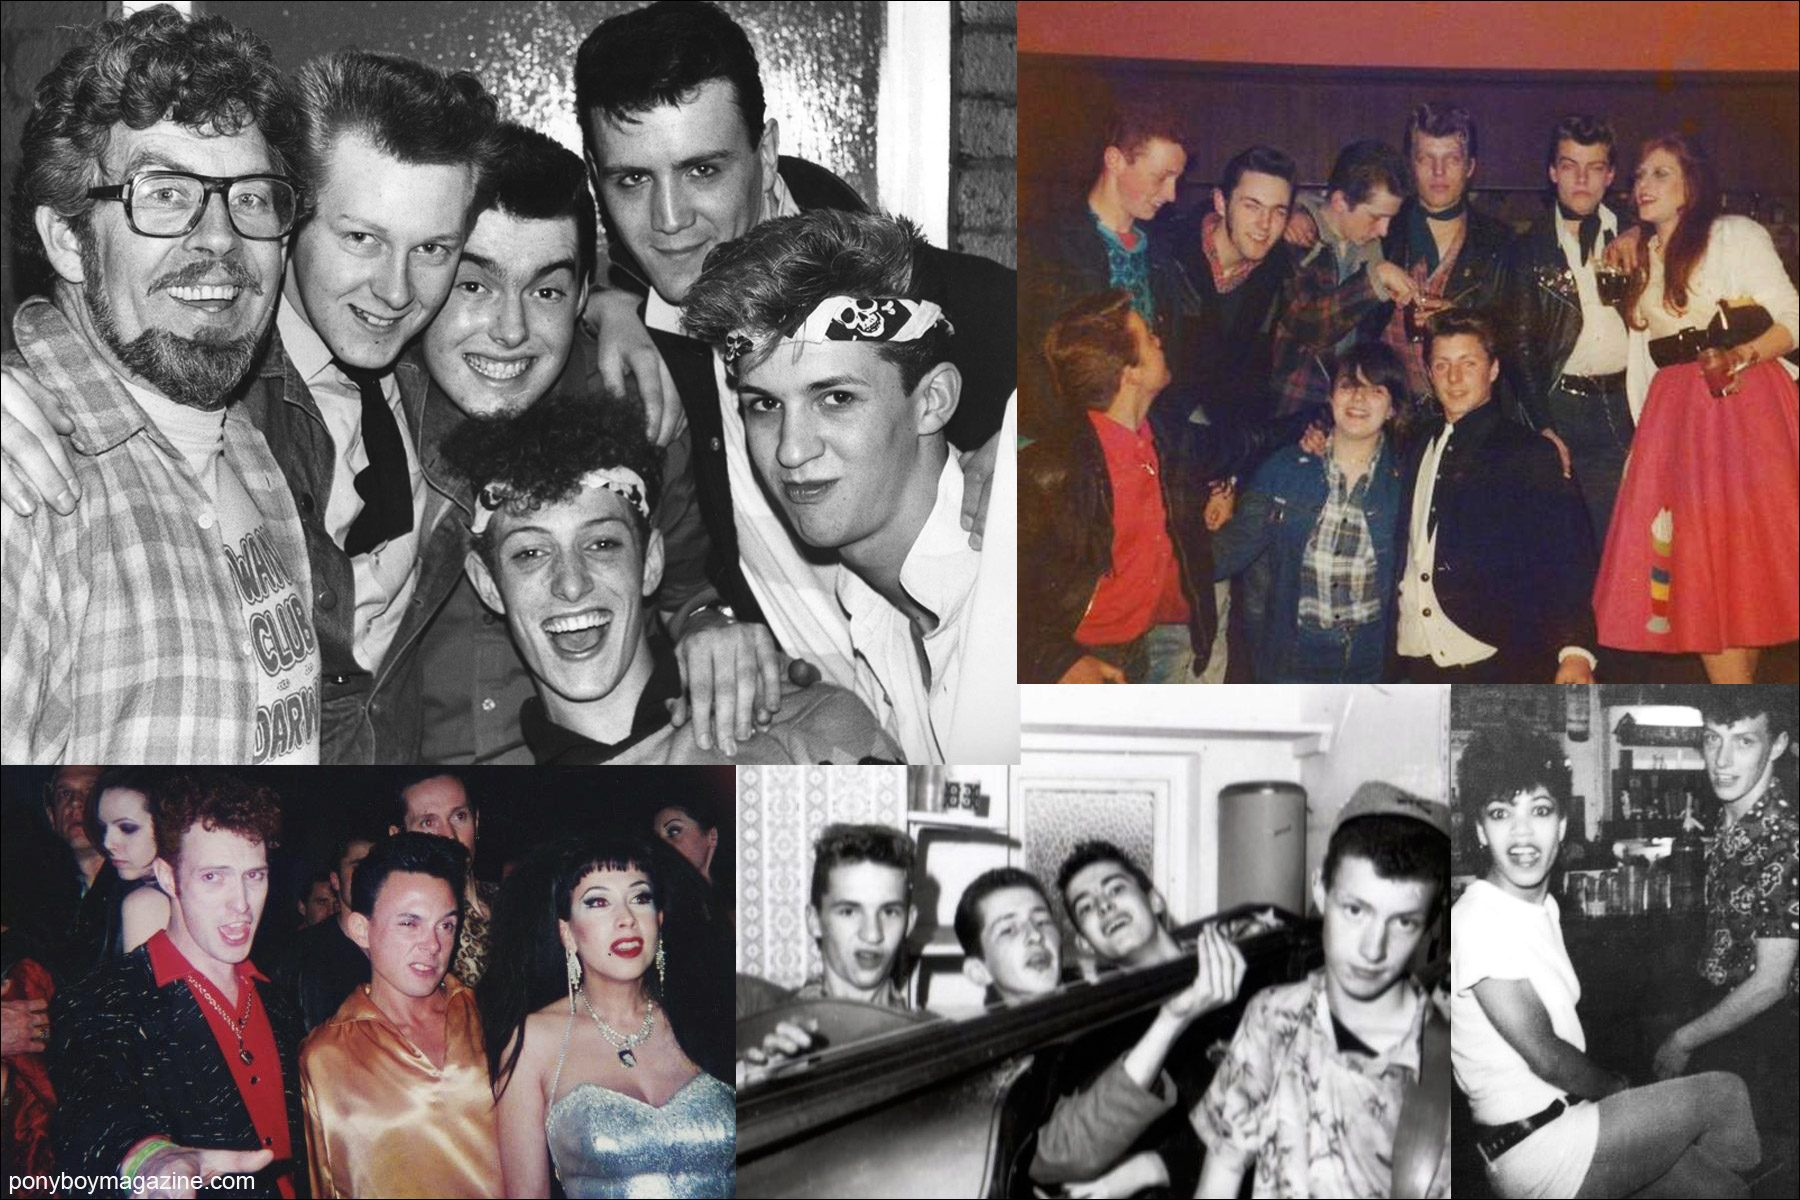 Assorted old snapshots from the personal collection of Polecats frontman Tim Polecat. Ponyboy Magazine New York.